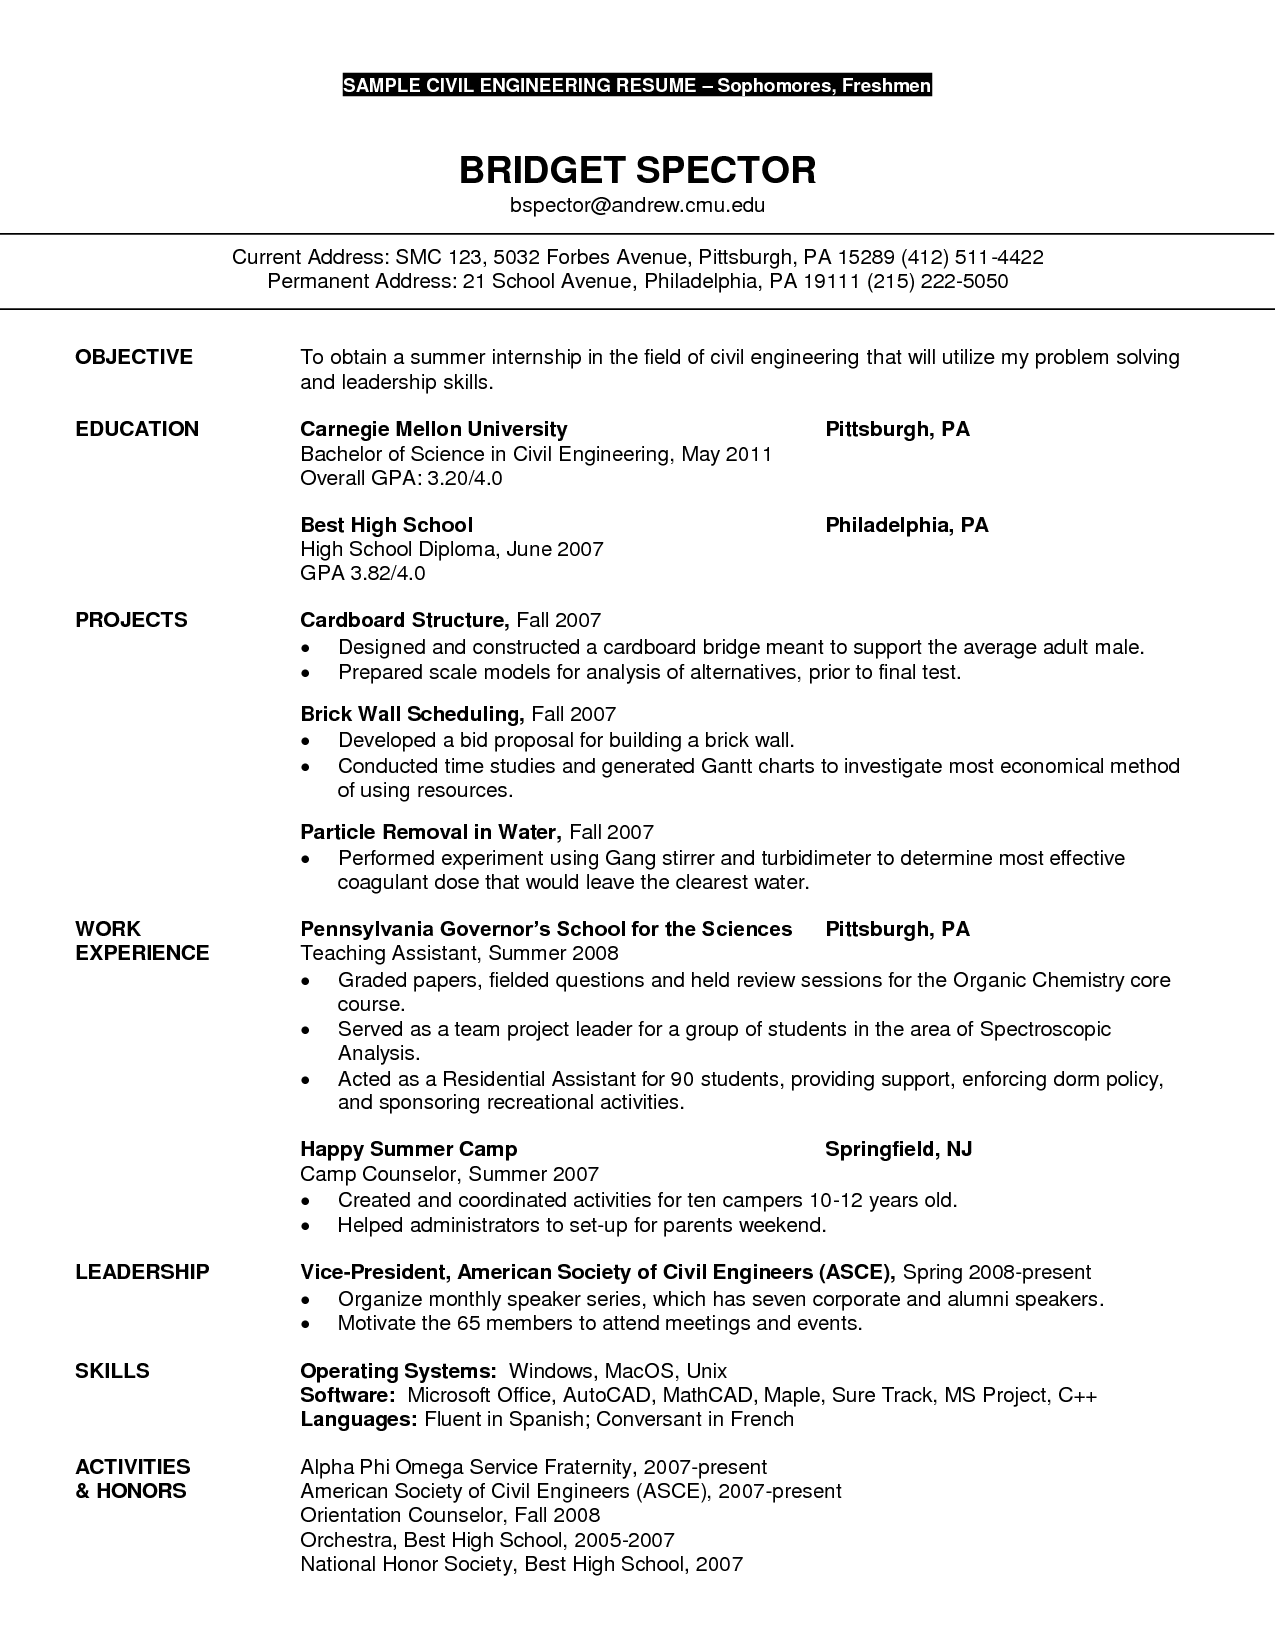 Civil Engineer Resume Sample   Http://www.resumecareer.info/civil